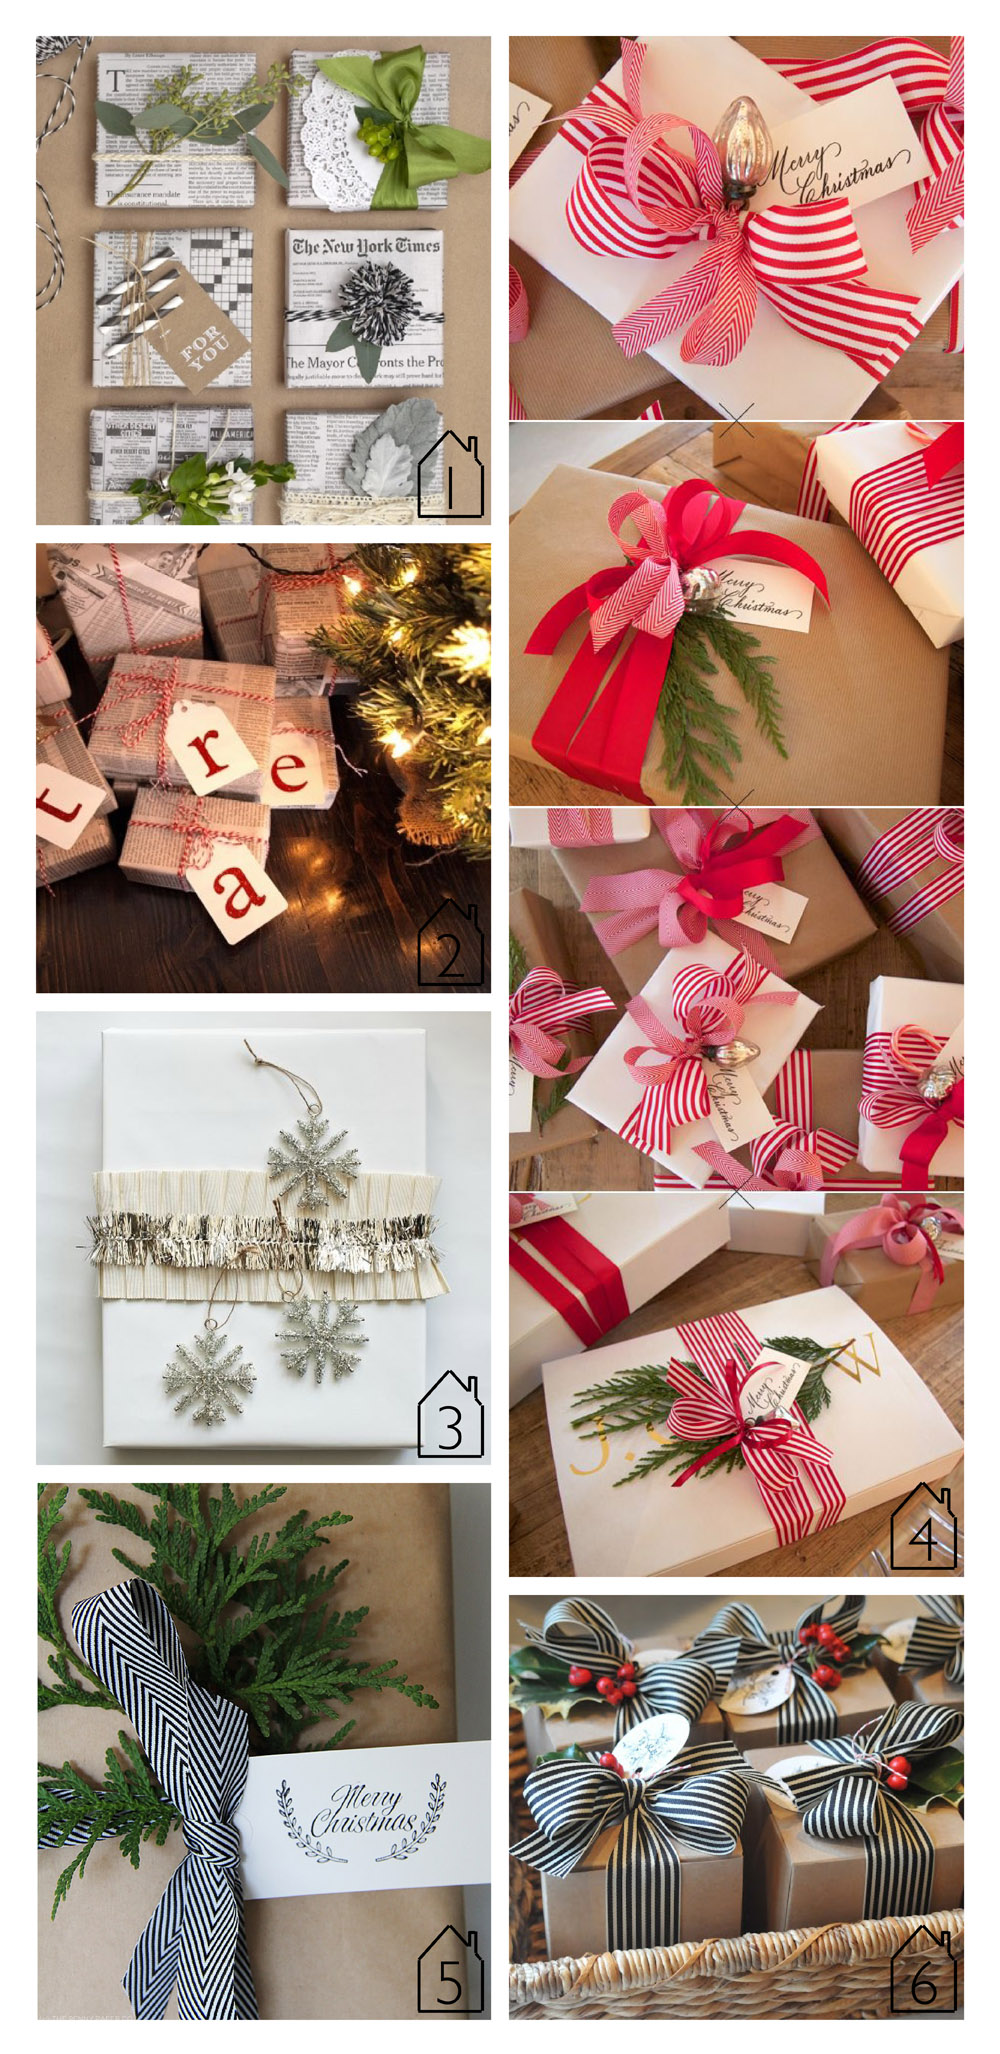 1. newsprint wrapping source unknown  2. newsprint wrapping source unknown  3. snowflake wrapping via Martha Stewar  4. kraft paper and red ribbon via H2 Design  5. kraft with black and white via The Penny Paper Co.  6. holly wrapping via Nine + Sixteen